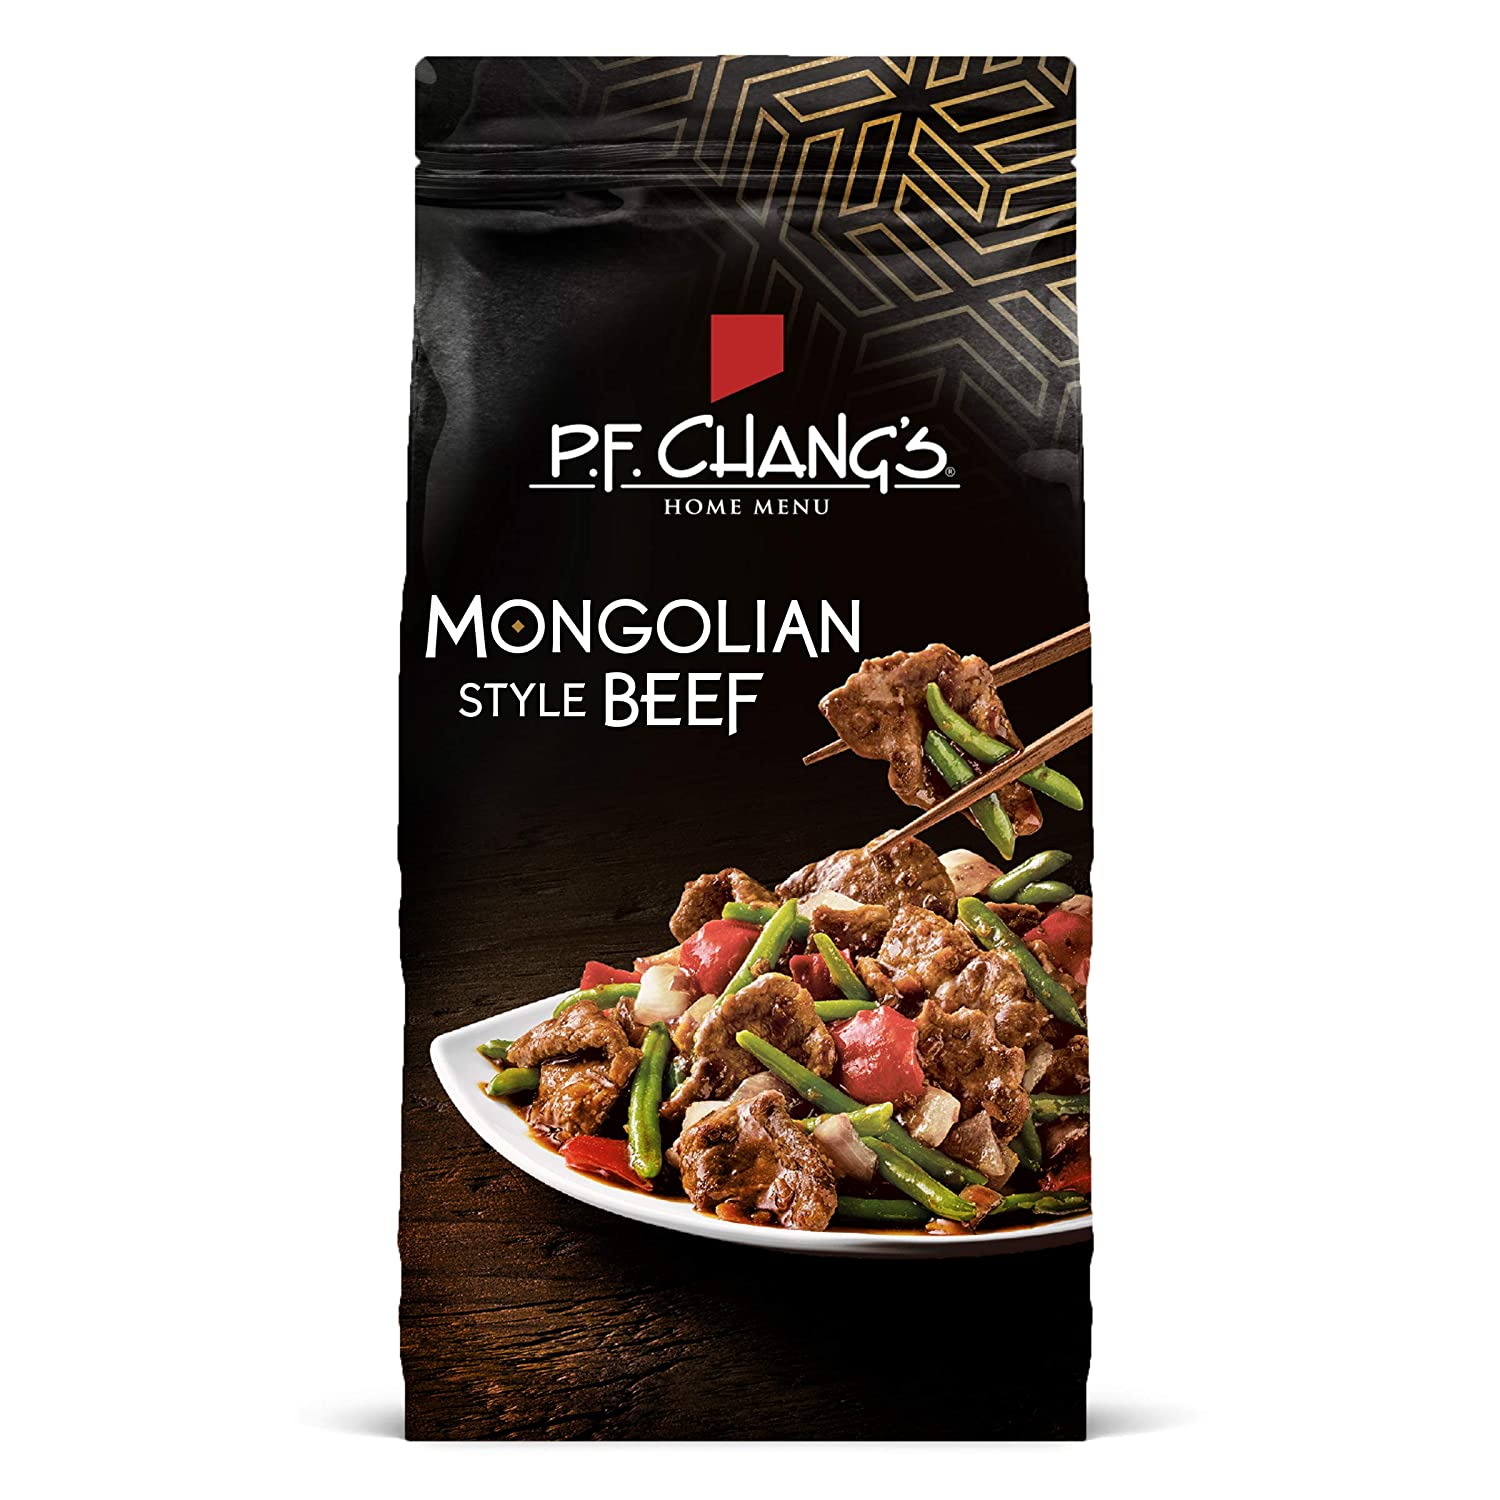 P.F. Chang's Home Menu Mongolian Style Beef Skillet Meal, Frozen Meal, 22 OZ